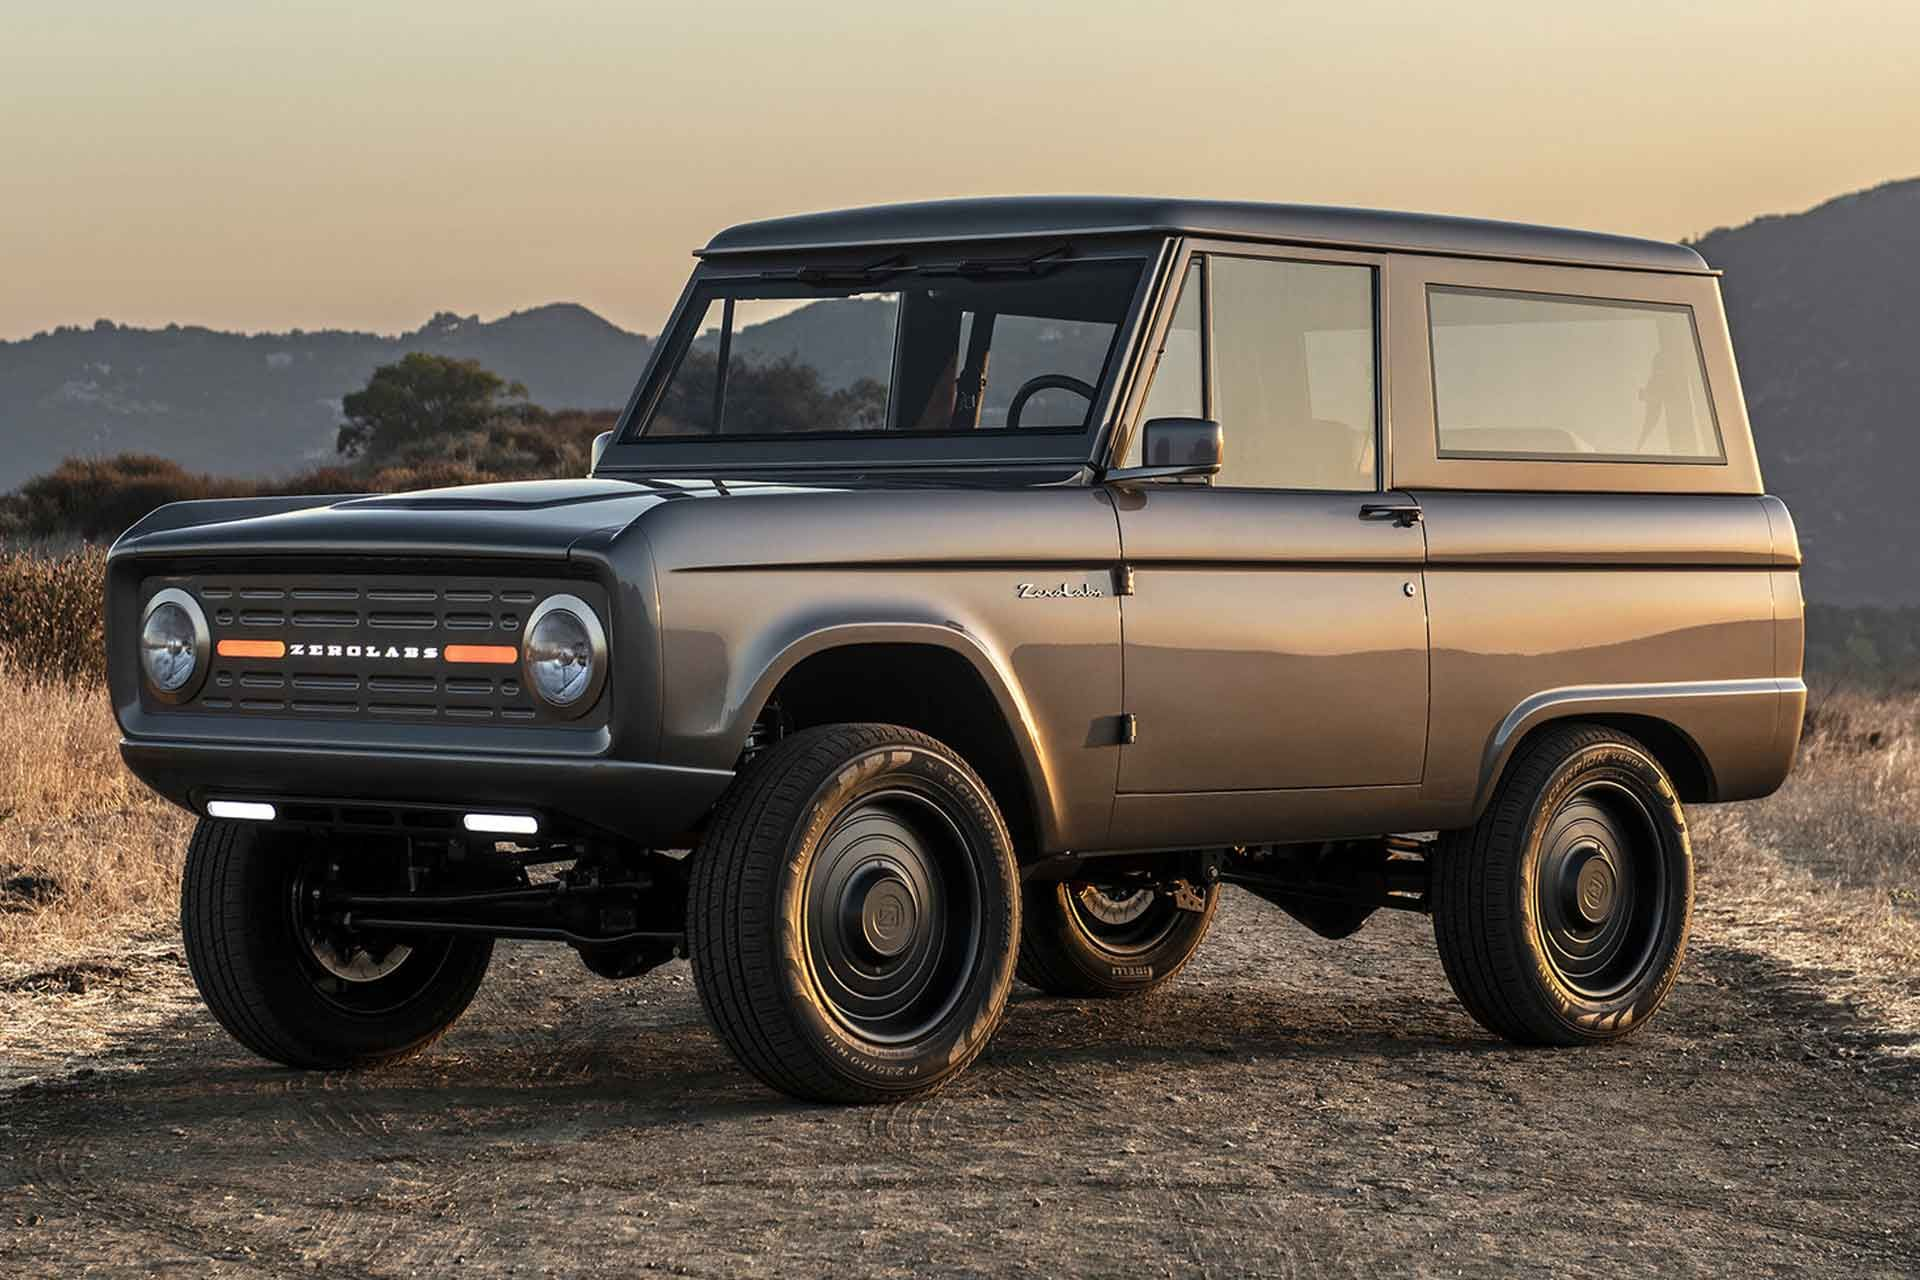 Ford S Next Gen Bronco Has Been Officially Revealed With The New